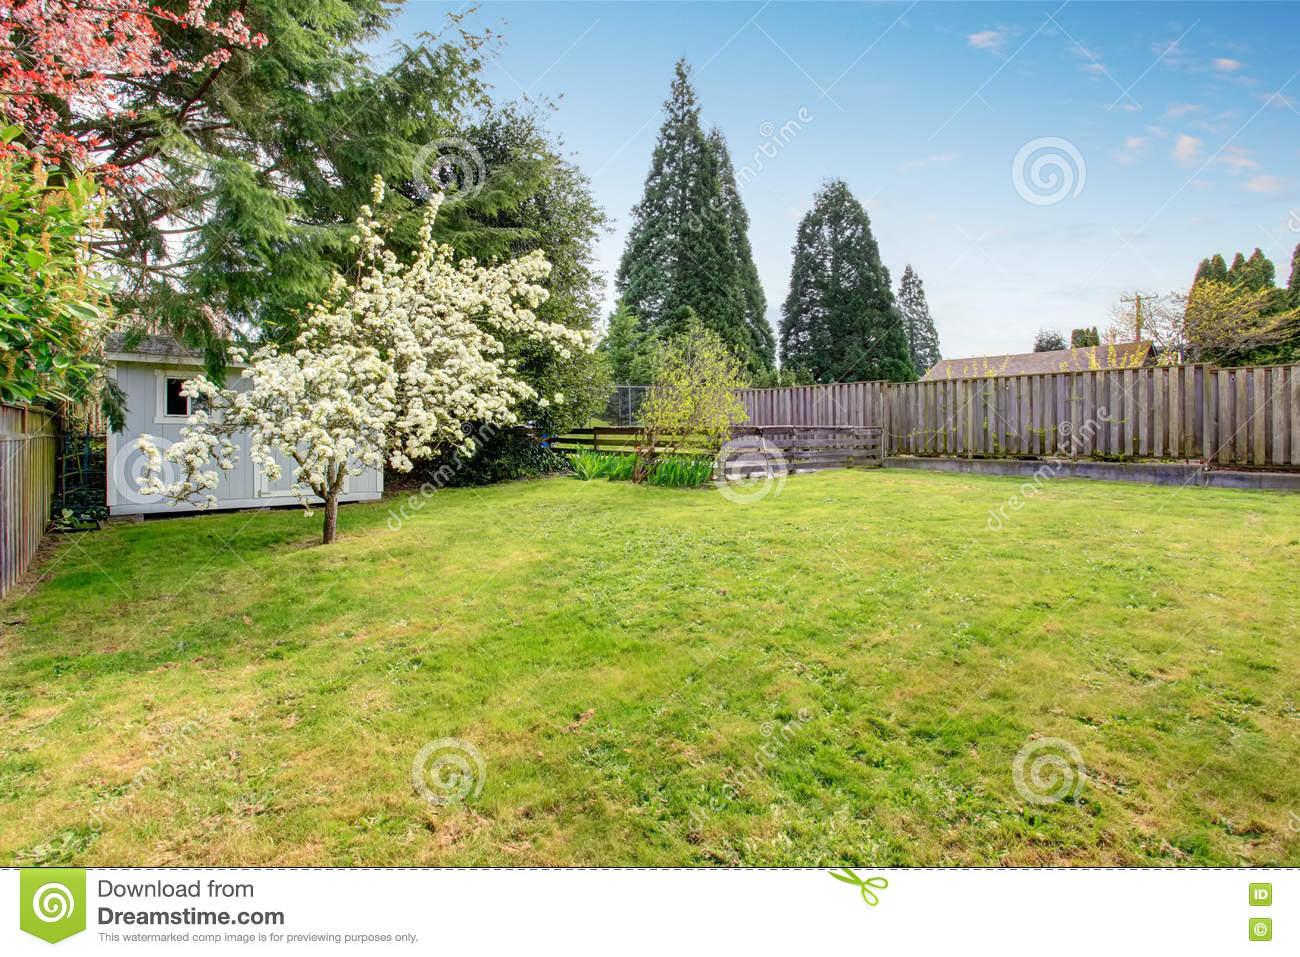 Fenced Backyard With Grass Filled Garden And Small Shed Stock Photo